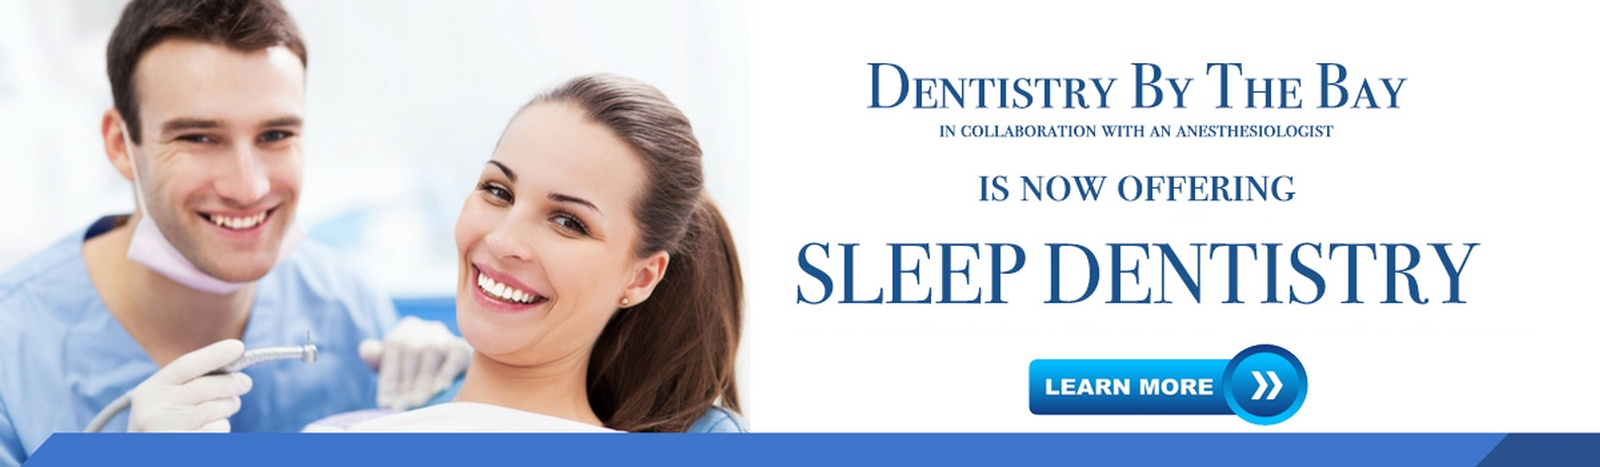 BELLEVILLE SLEEP DENTISTRY